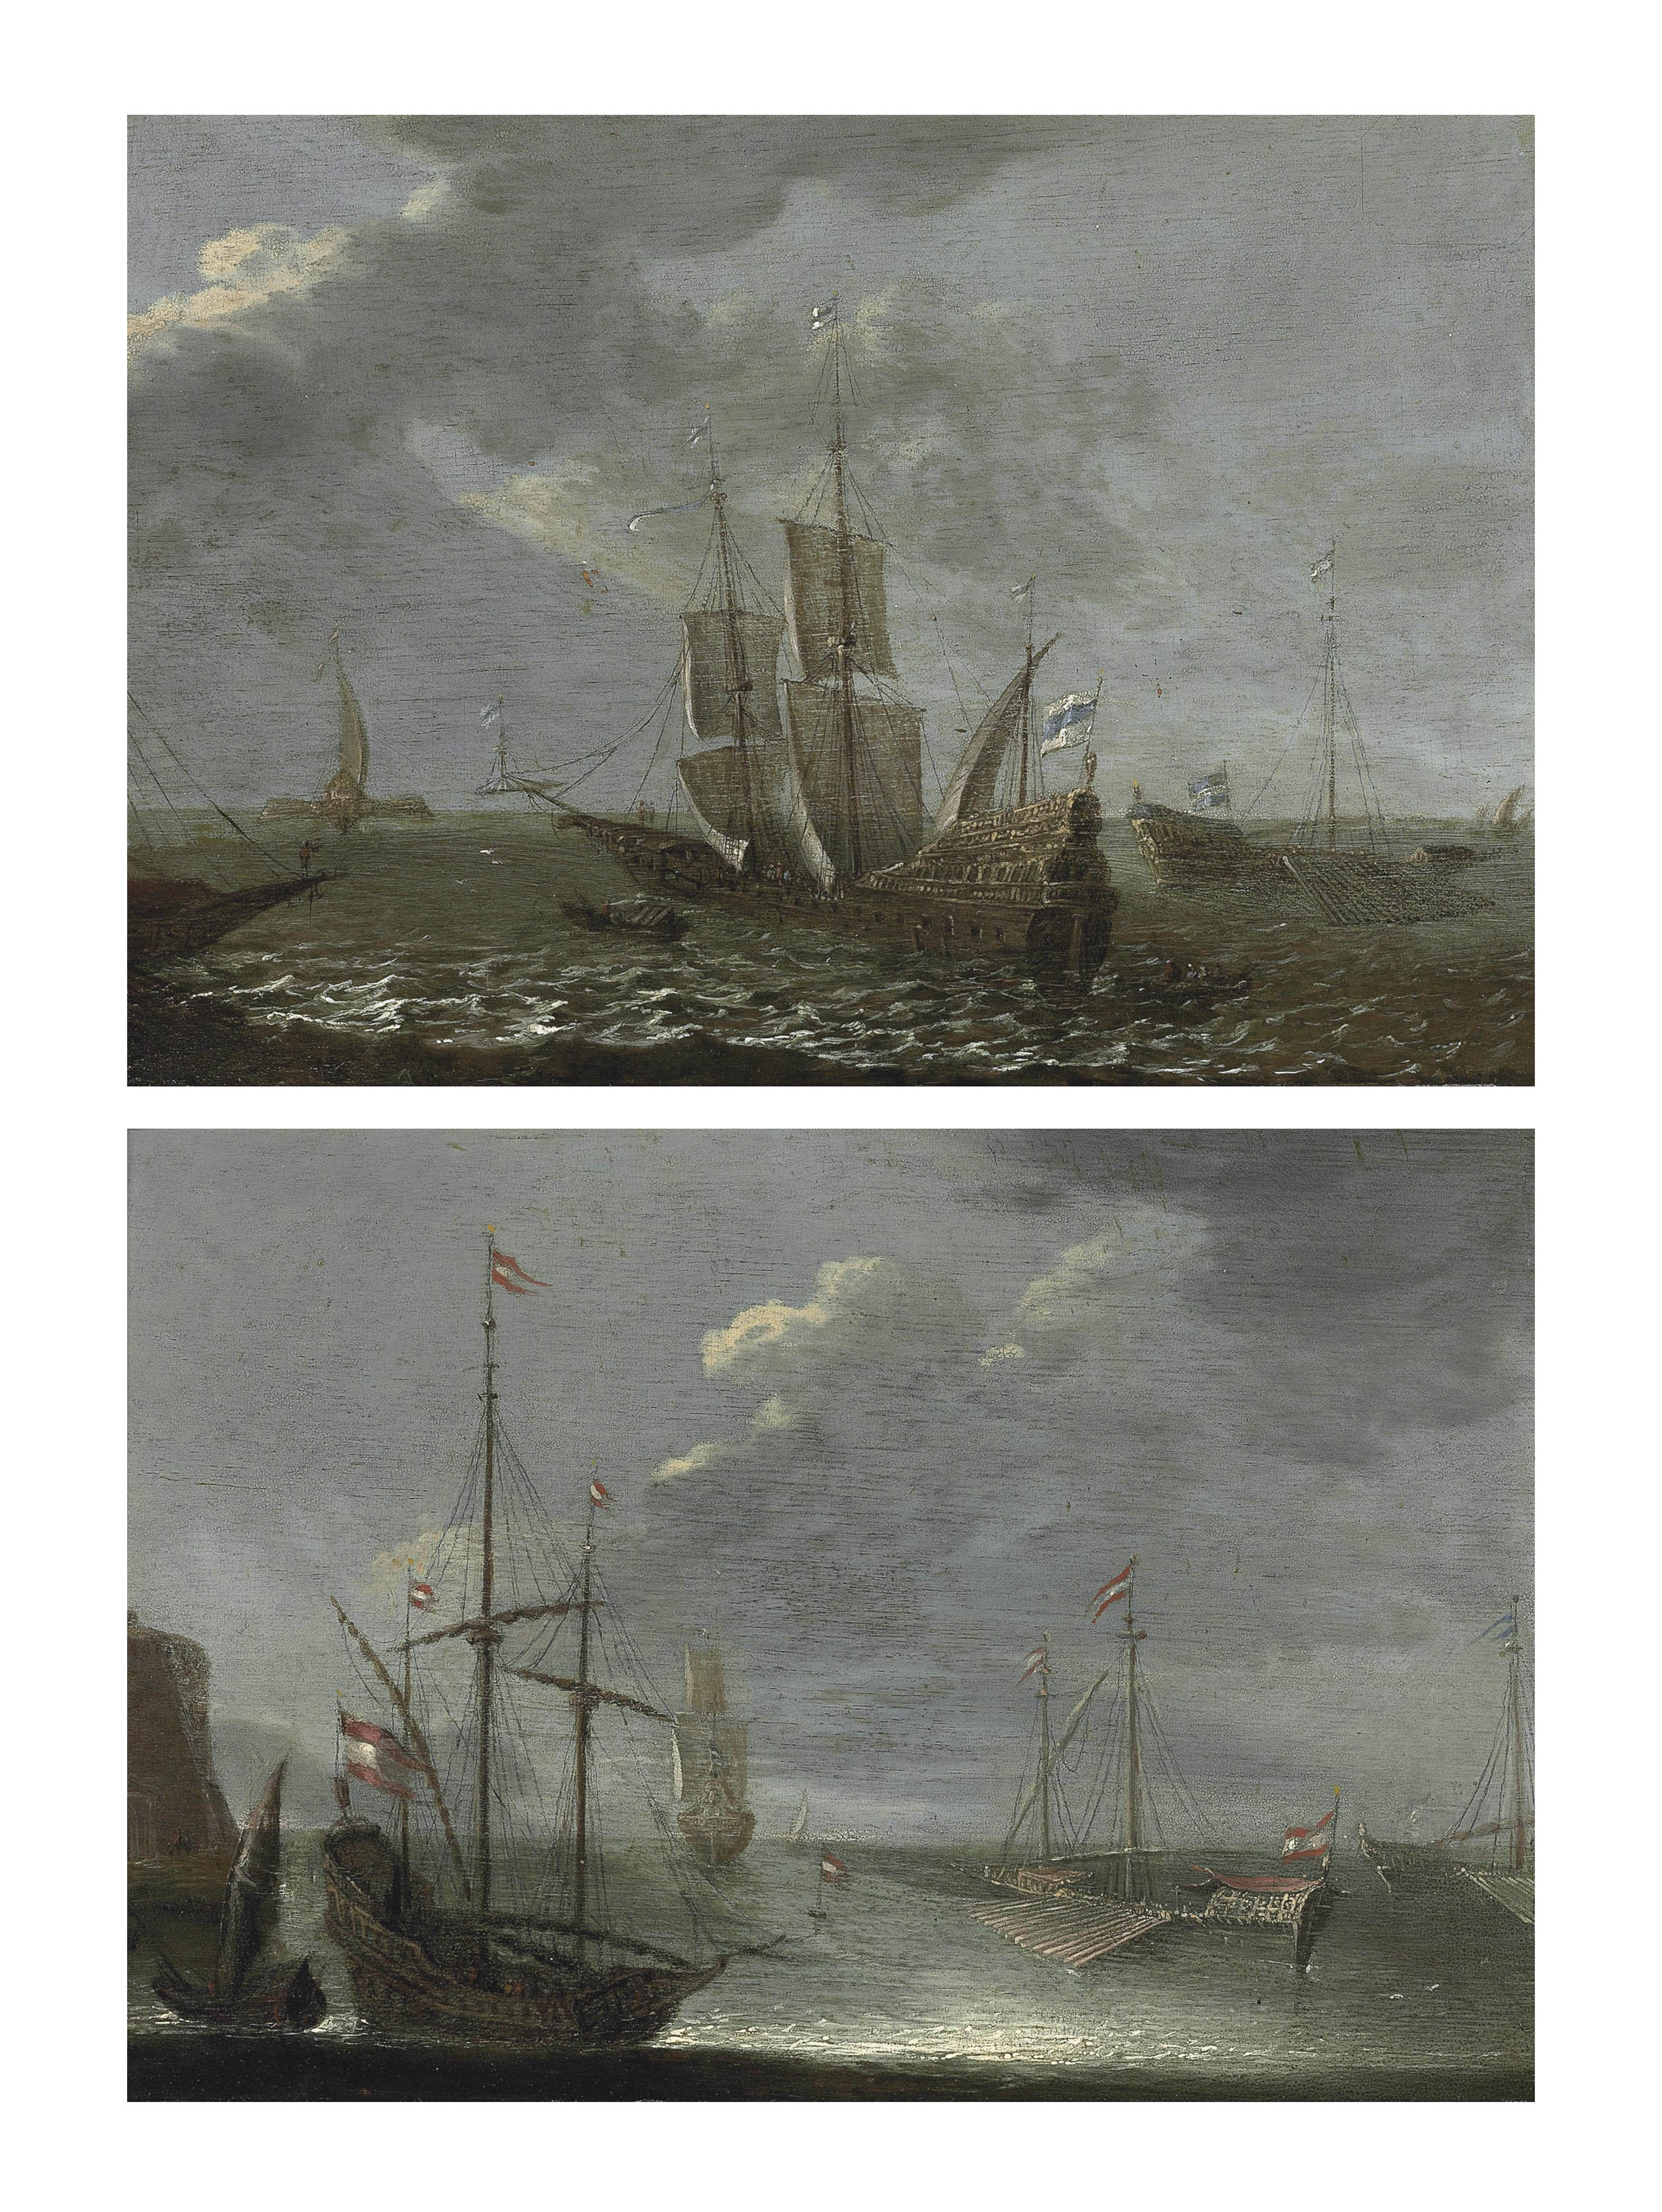 Shipping in a fresh breeze; and A kaag and other shipping offshore in calm waters